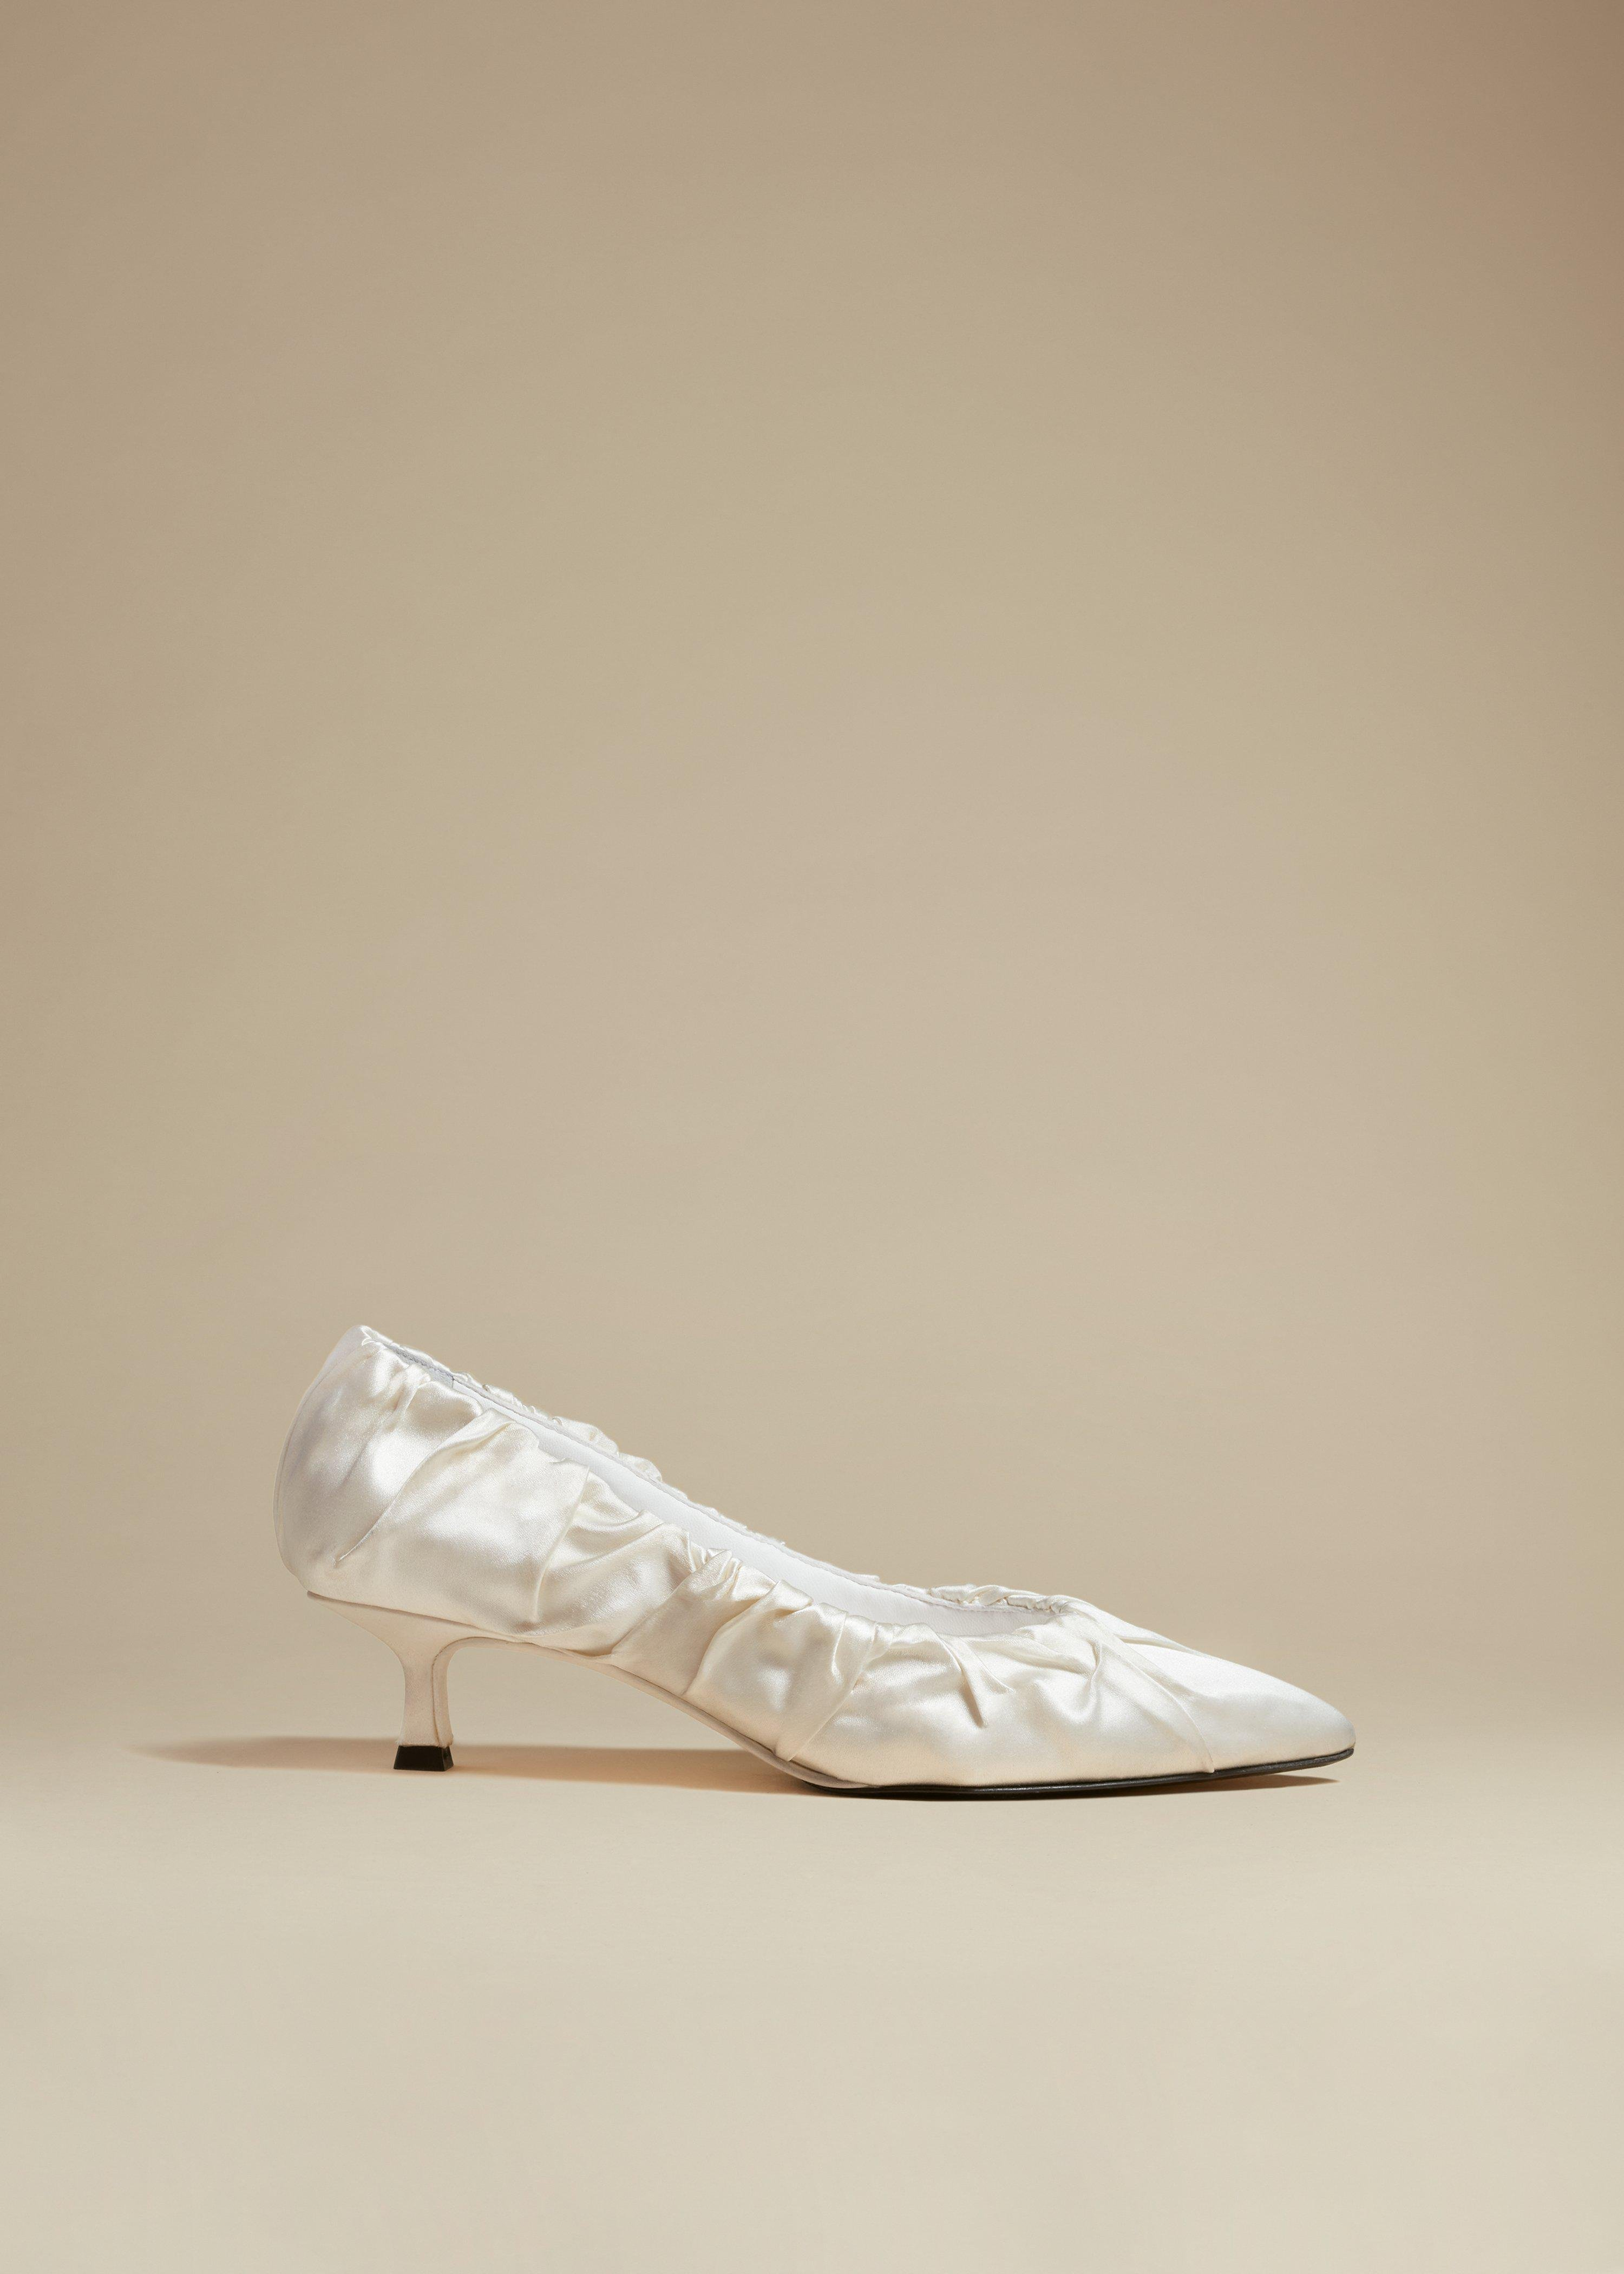 The Palermo Pump in Ivory